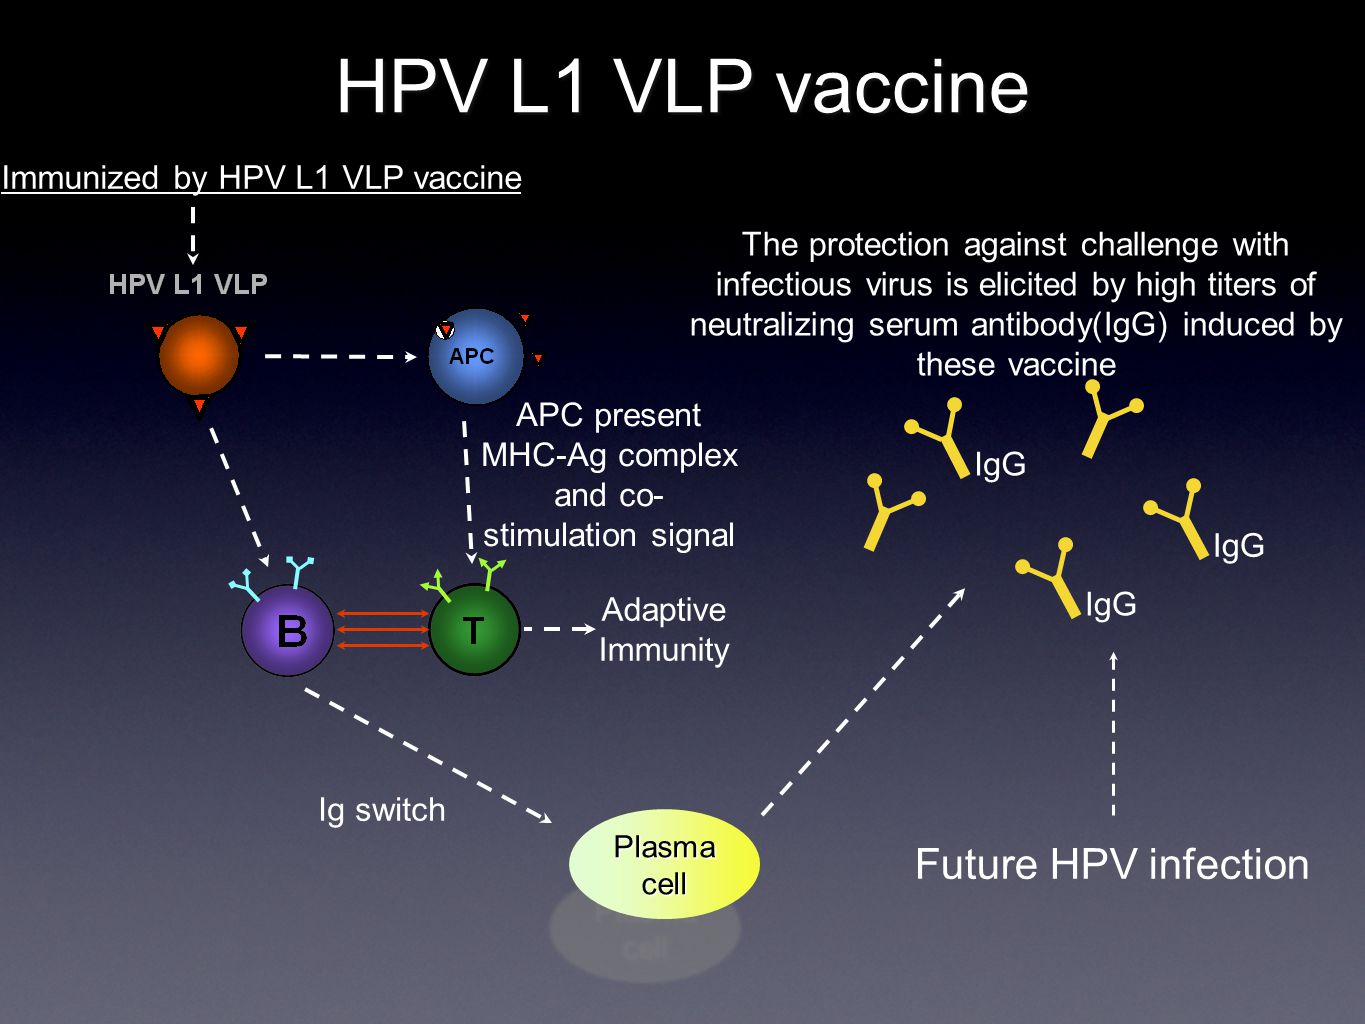 HPV L1 VLP vaccine IgG APC present MHC-Ag complex and co- stimulation signal Plasma cell Ig switch IgG Immunized by HPV L1 VLP vaccine The protection against challenge with infectious virus is elicited by high titers of neutralizing serum antibody(IgG) induced by these vaccine Future HPV infection Adaptive Immunity